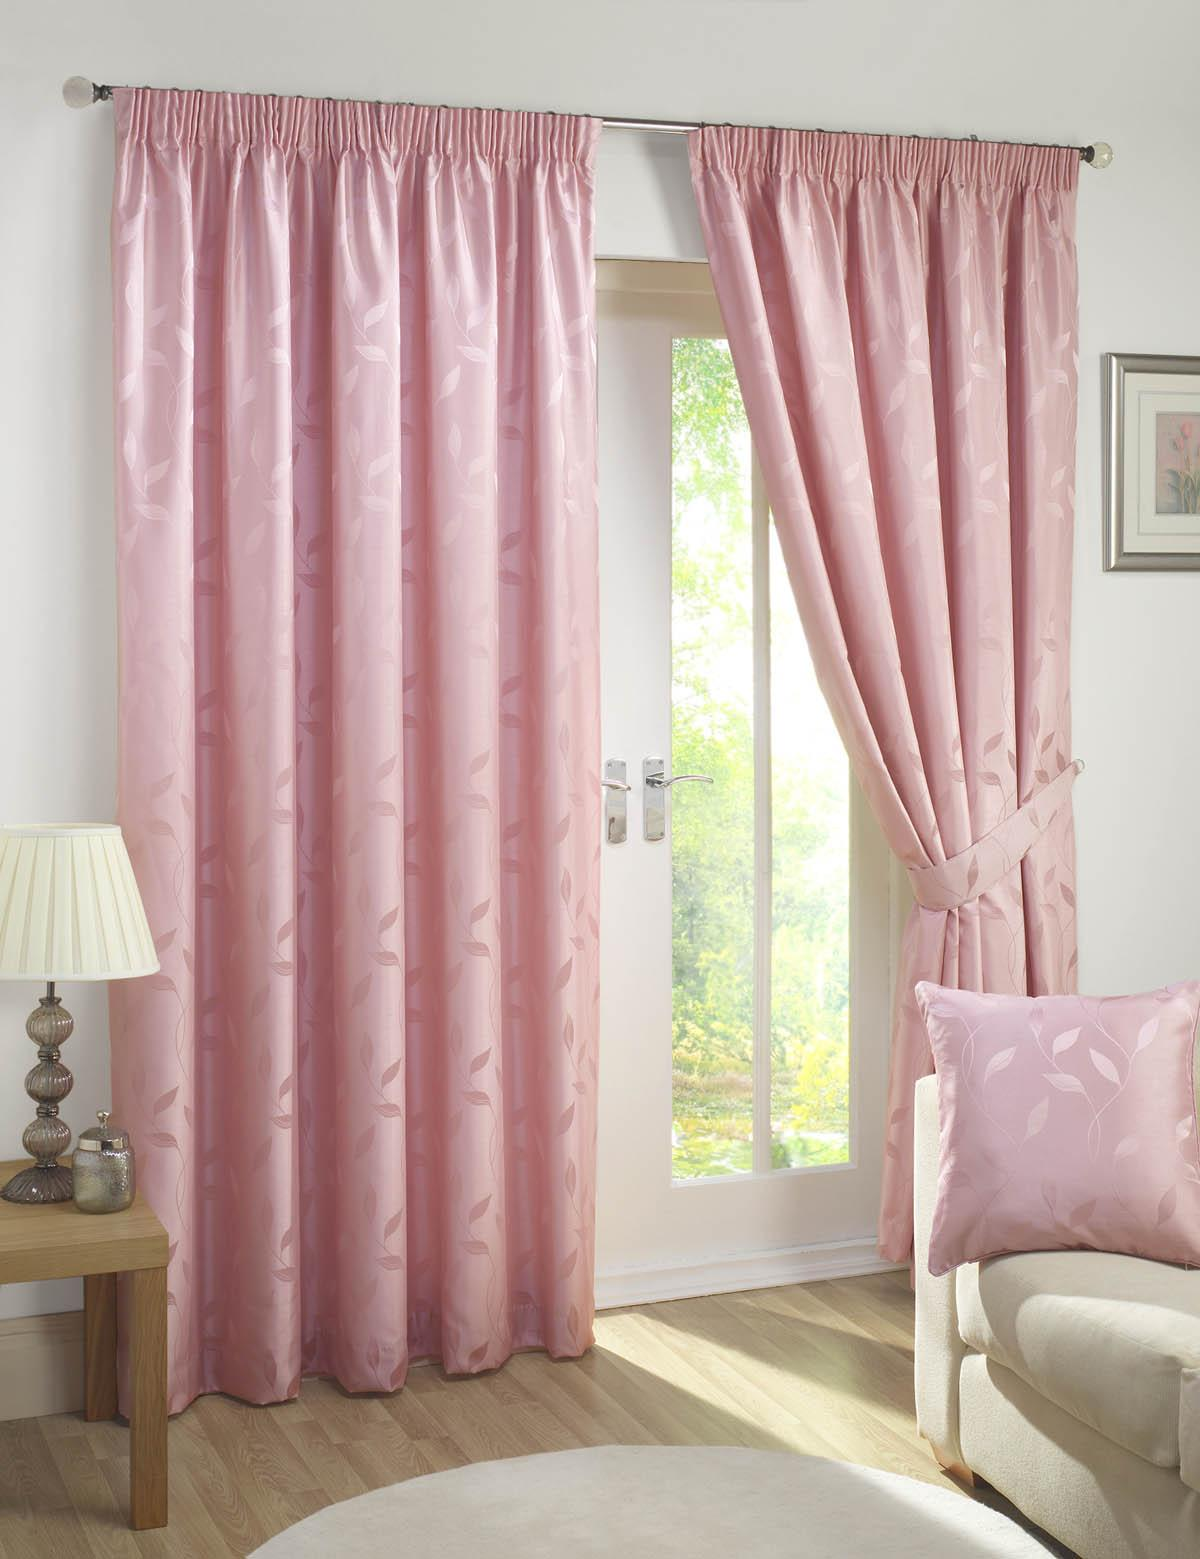 Buy Grey Toile Pencil Pleat Curtains From The Next Uk Online Shop Pink And Grey Curtains Uk